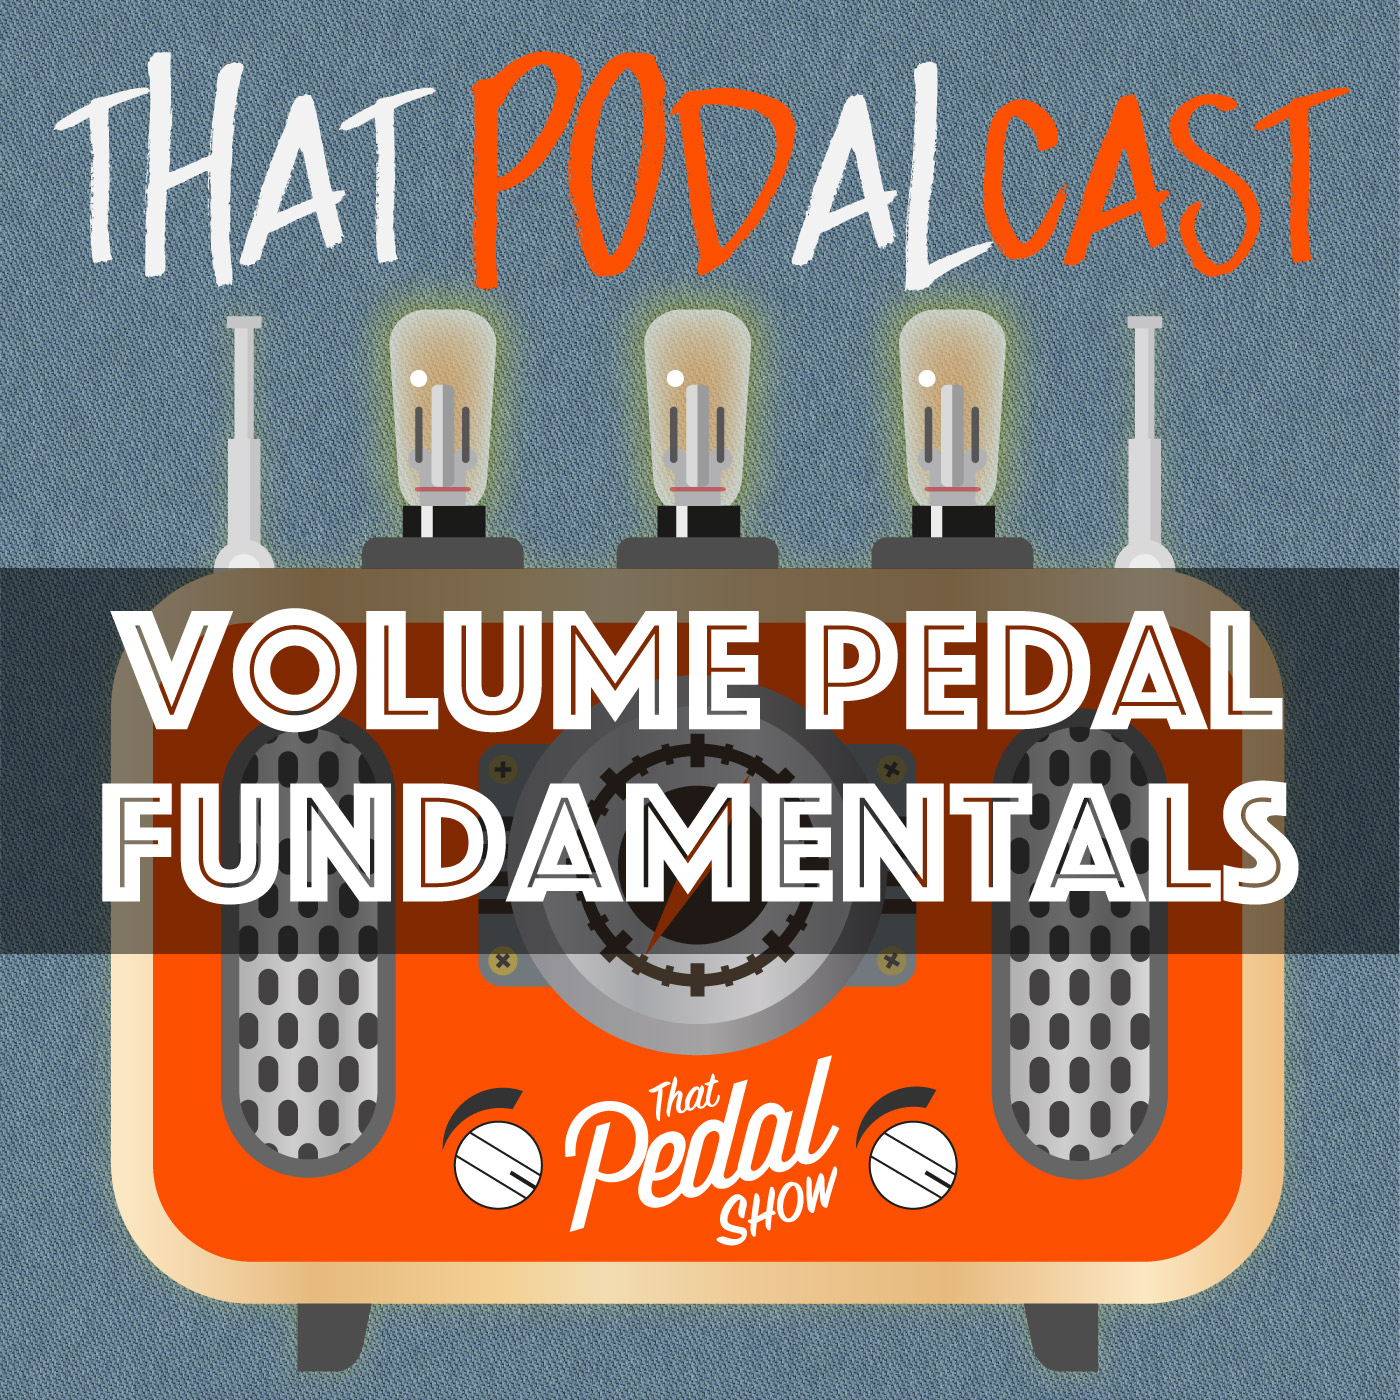 hight resolution of volume pedal fundamentals that pedal show